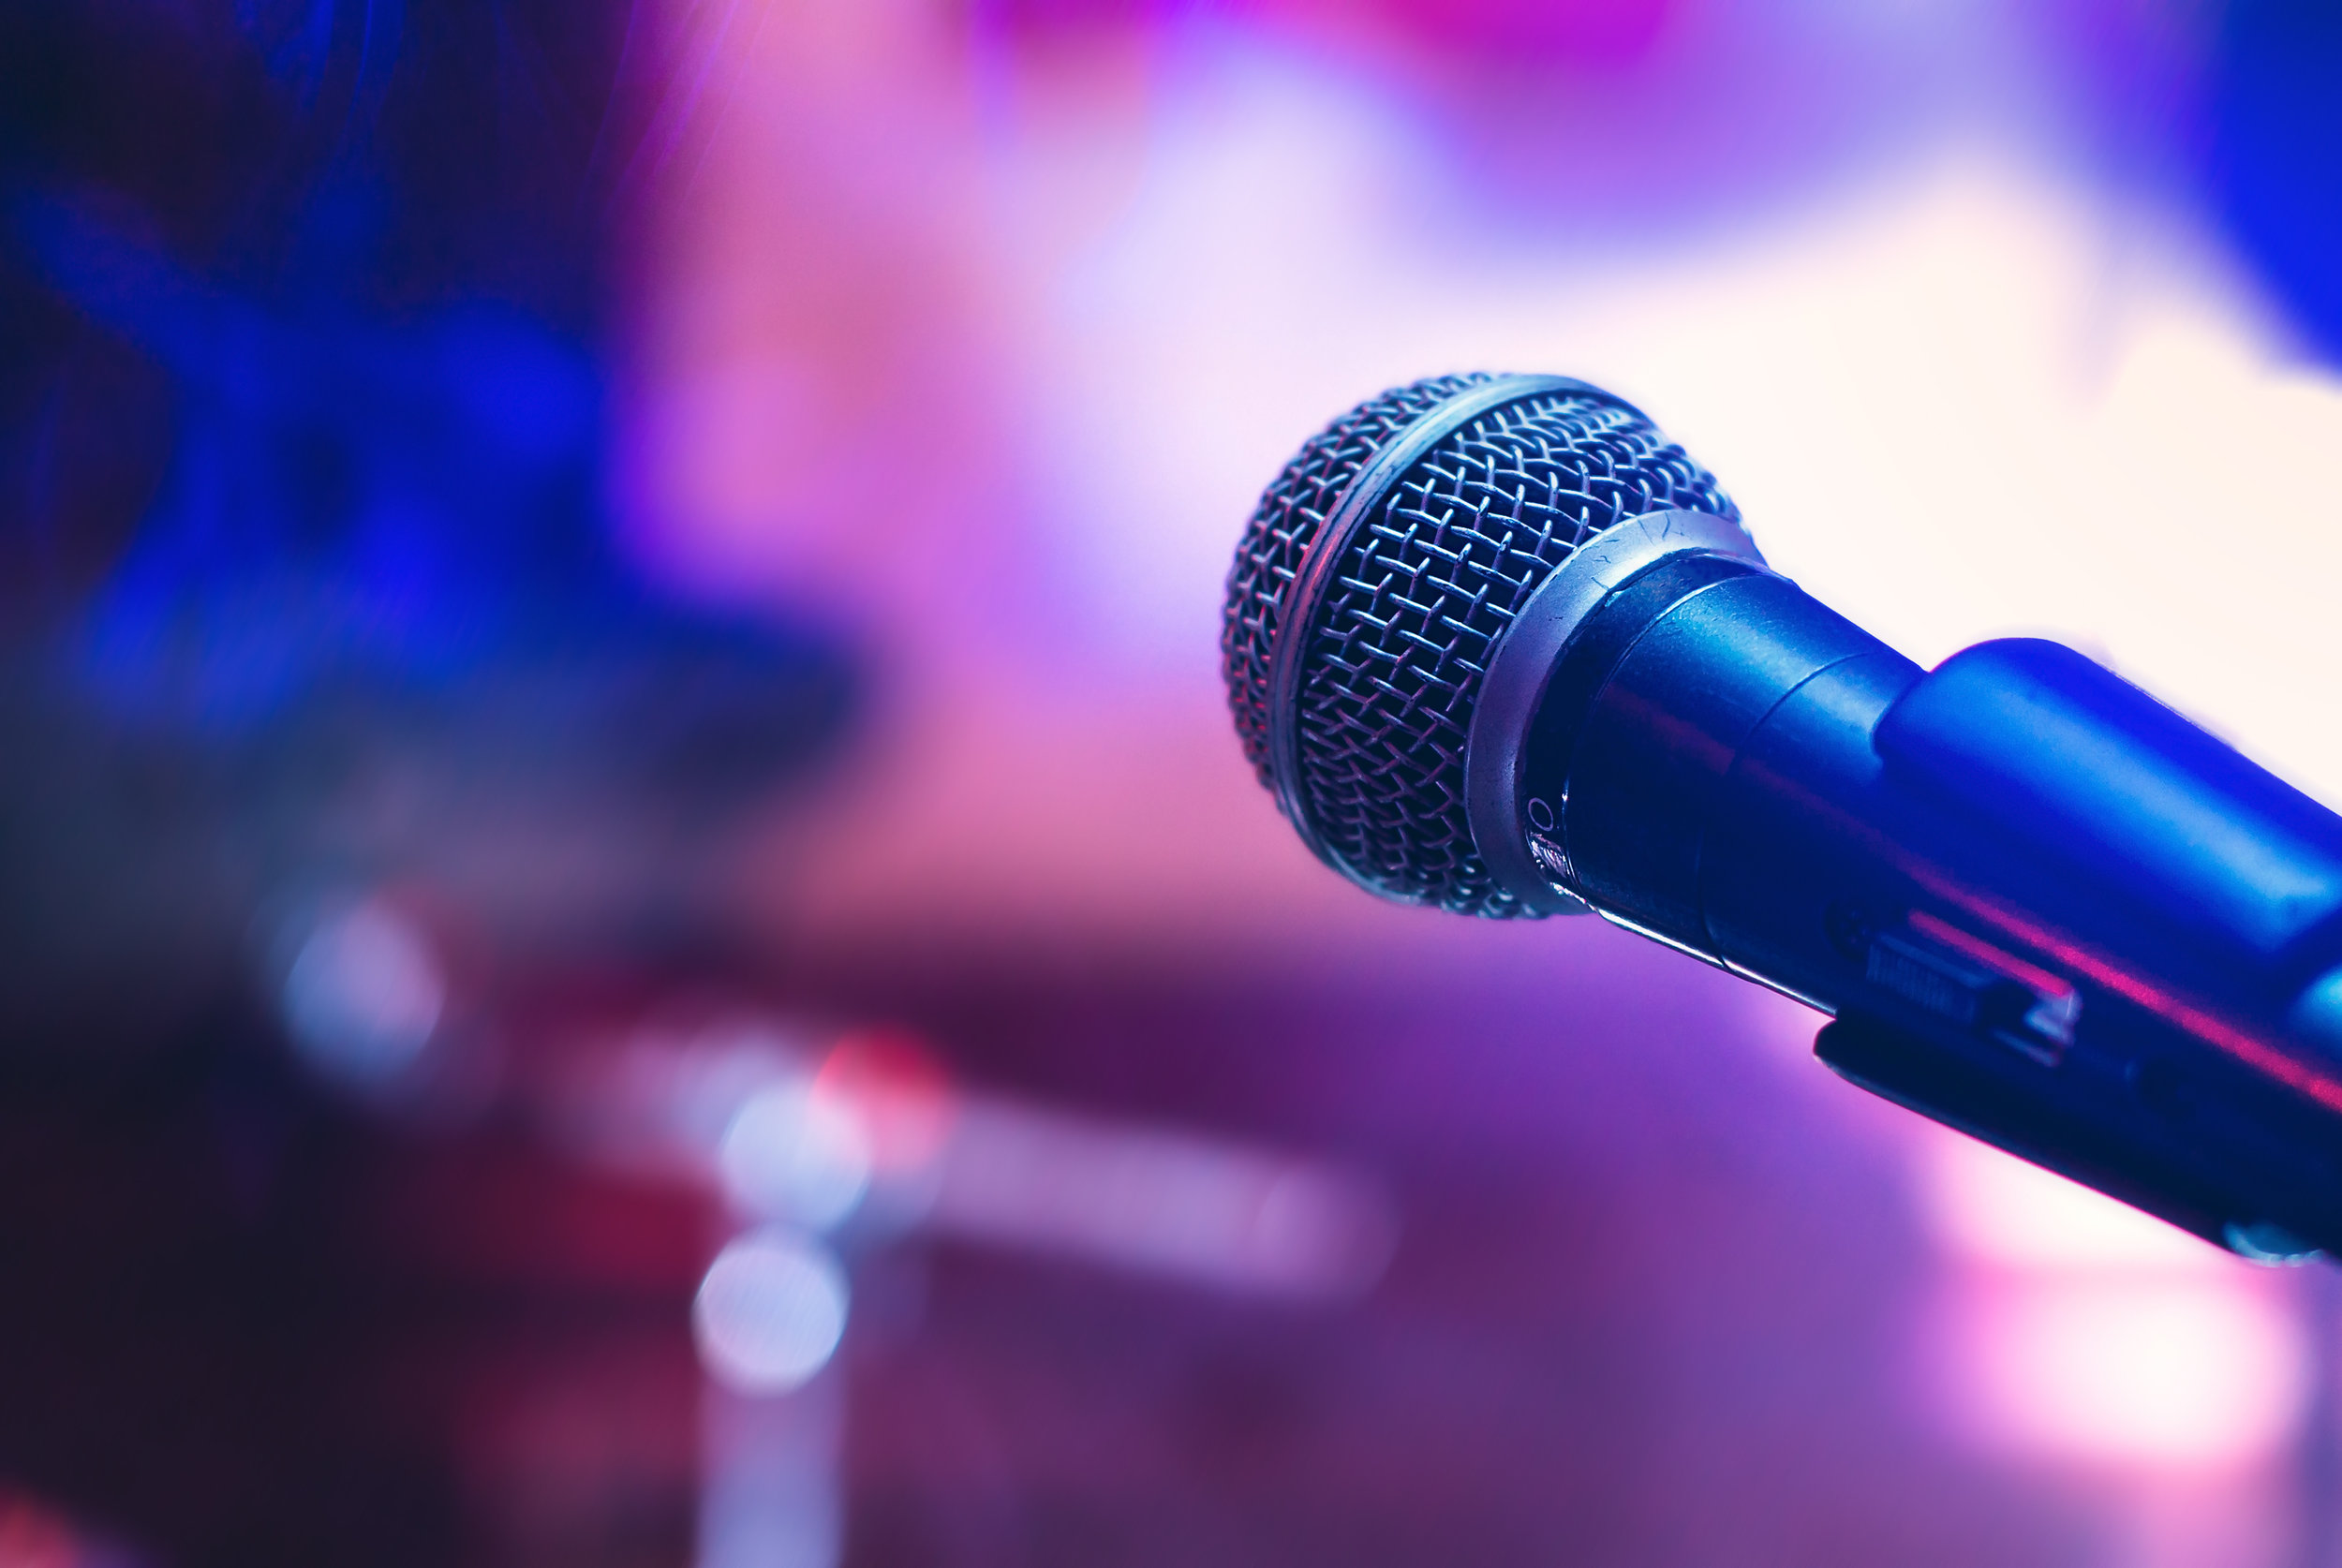 Band Lead Singer - A versatile vocalist (Male or Female) able to sing many popular styles including Rock/Pop/Soul/Country. Must be out-going, energetic and confident on stage. It will be up to you to get the party going and the dance floor moving.